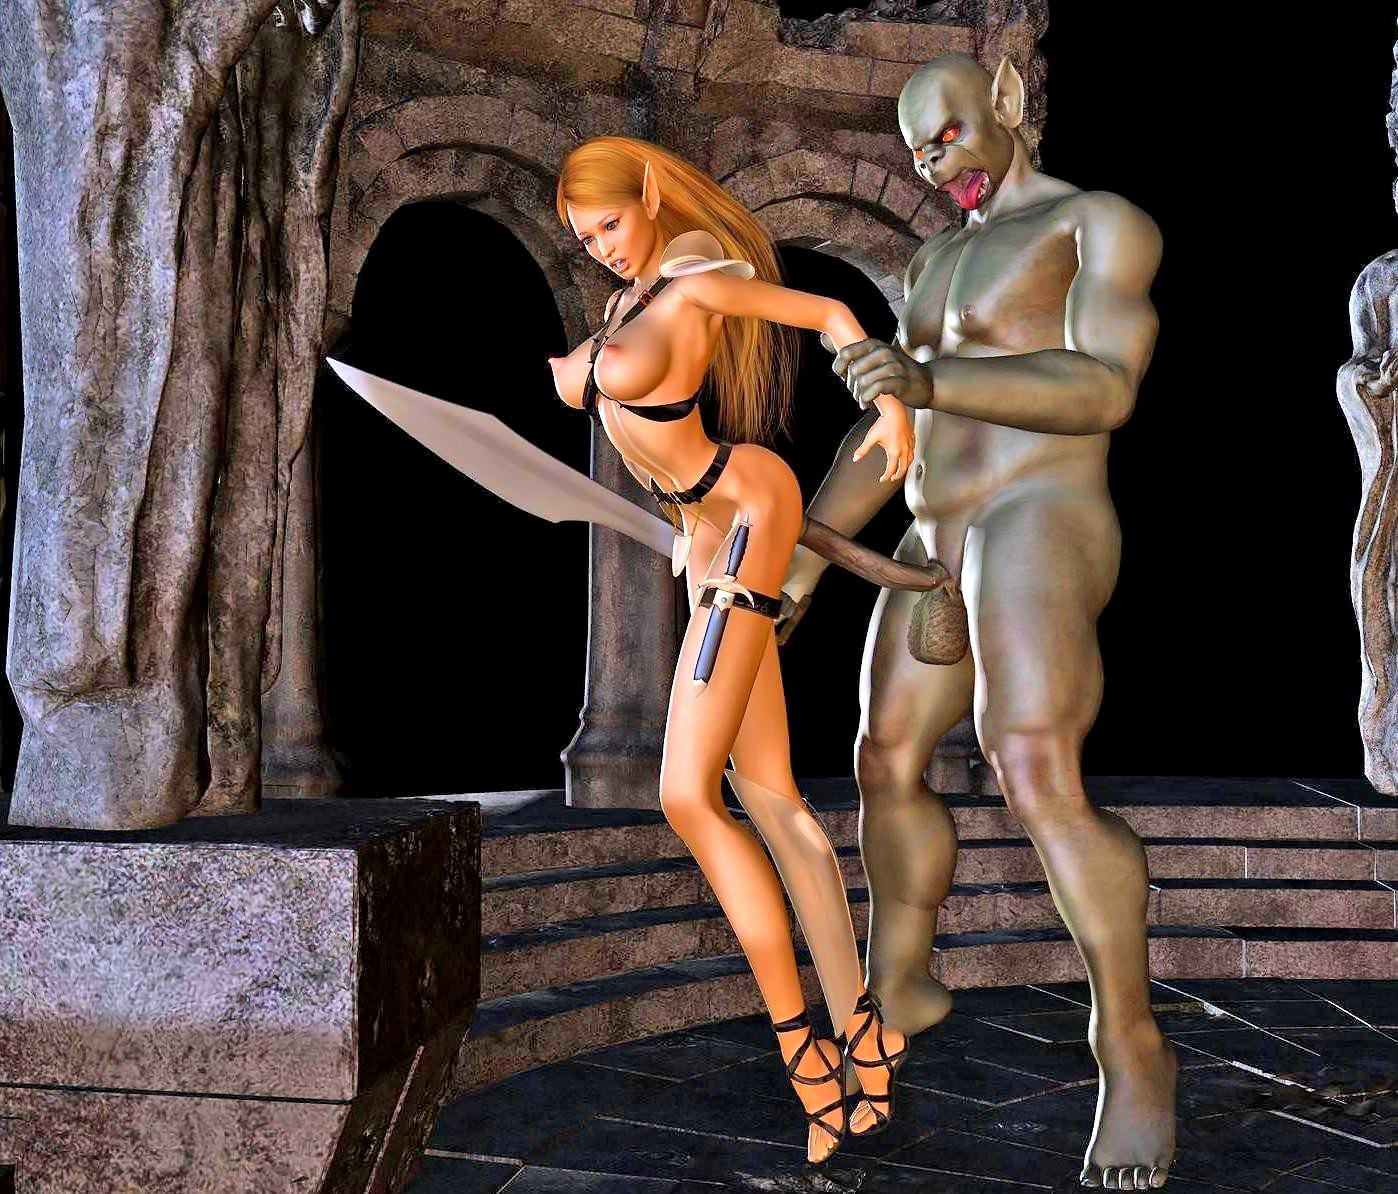 Sexy female warriors animated videos naked movies